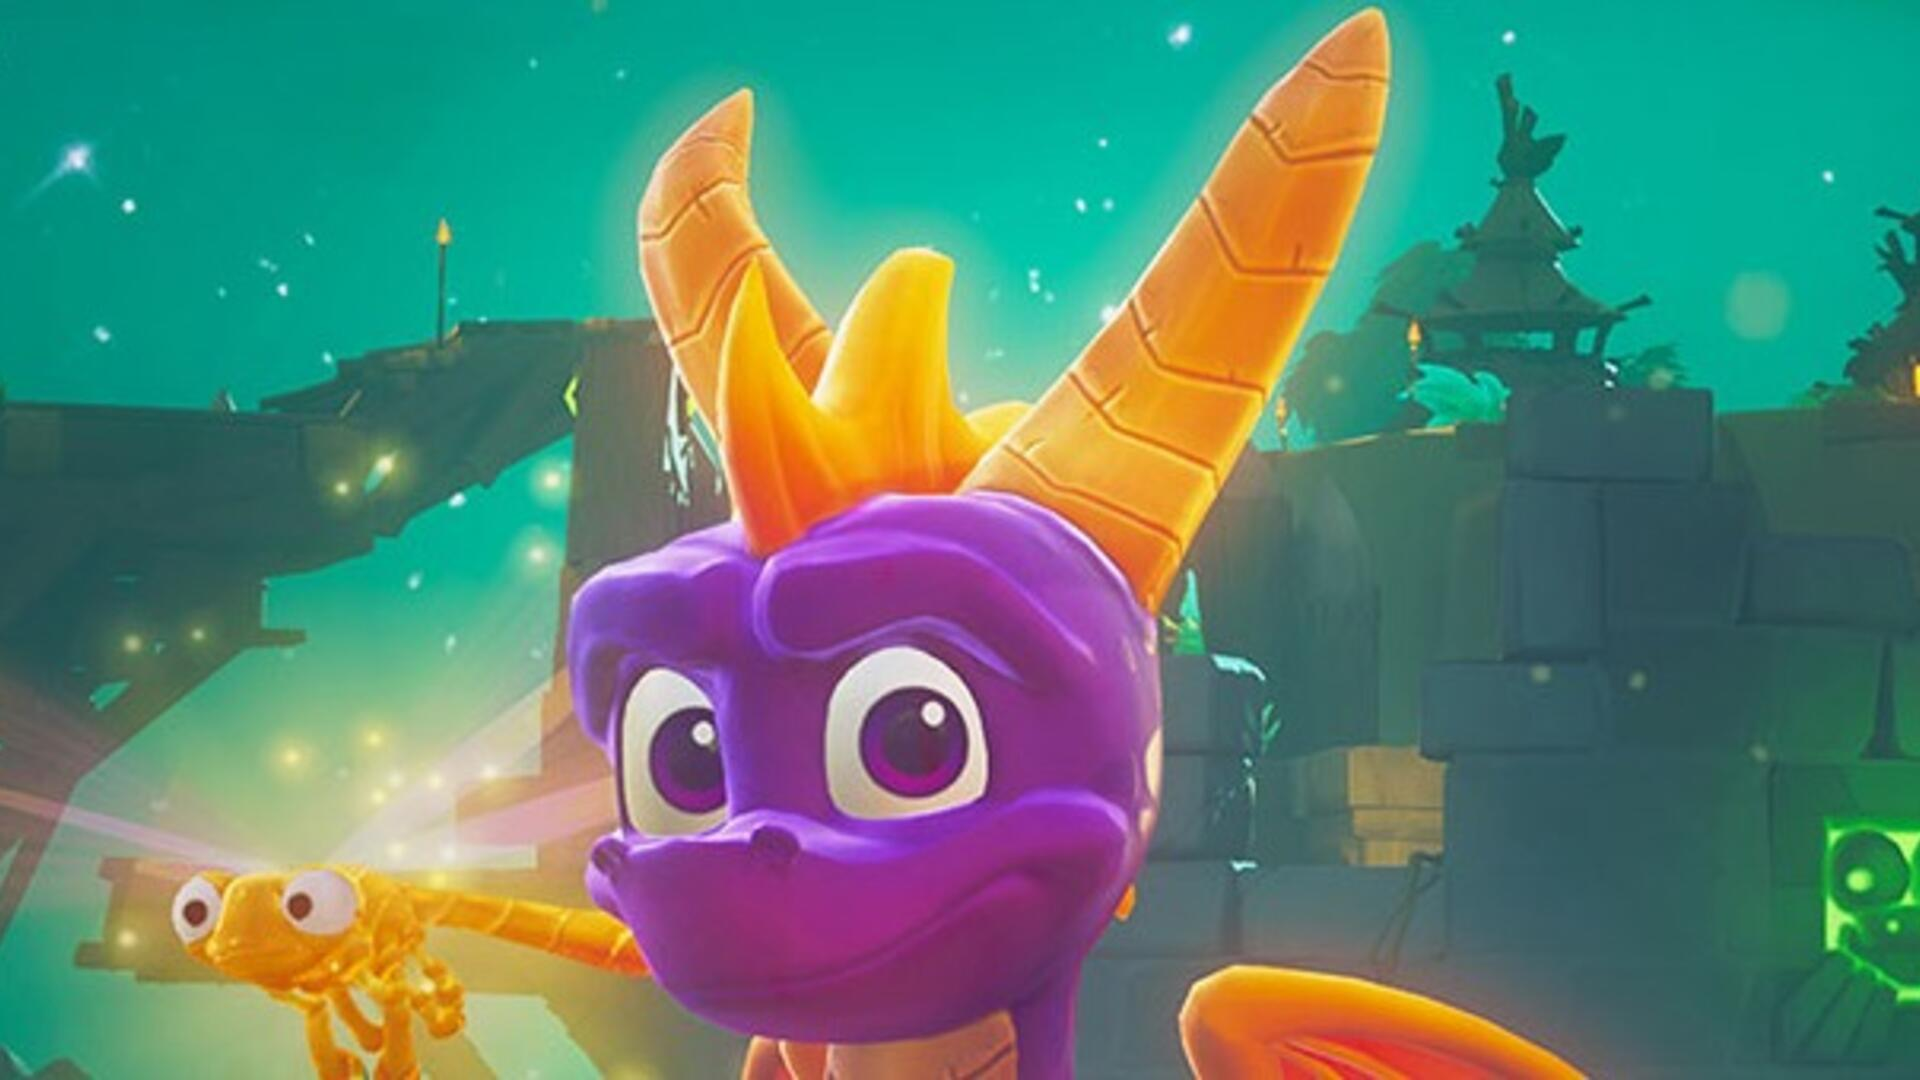 Spyro Reignited Trilogy PS4 and Xbox One Goes Under £25, Best Black Friday Price, Three Games for $29